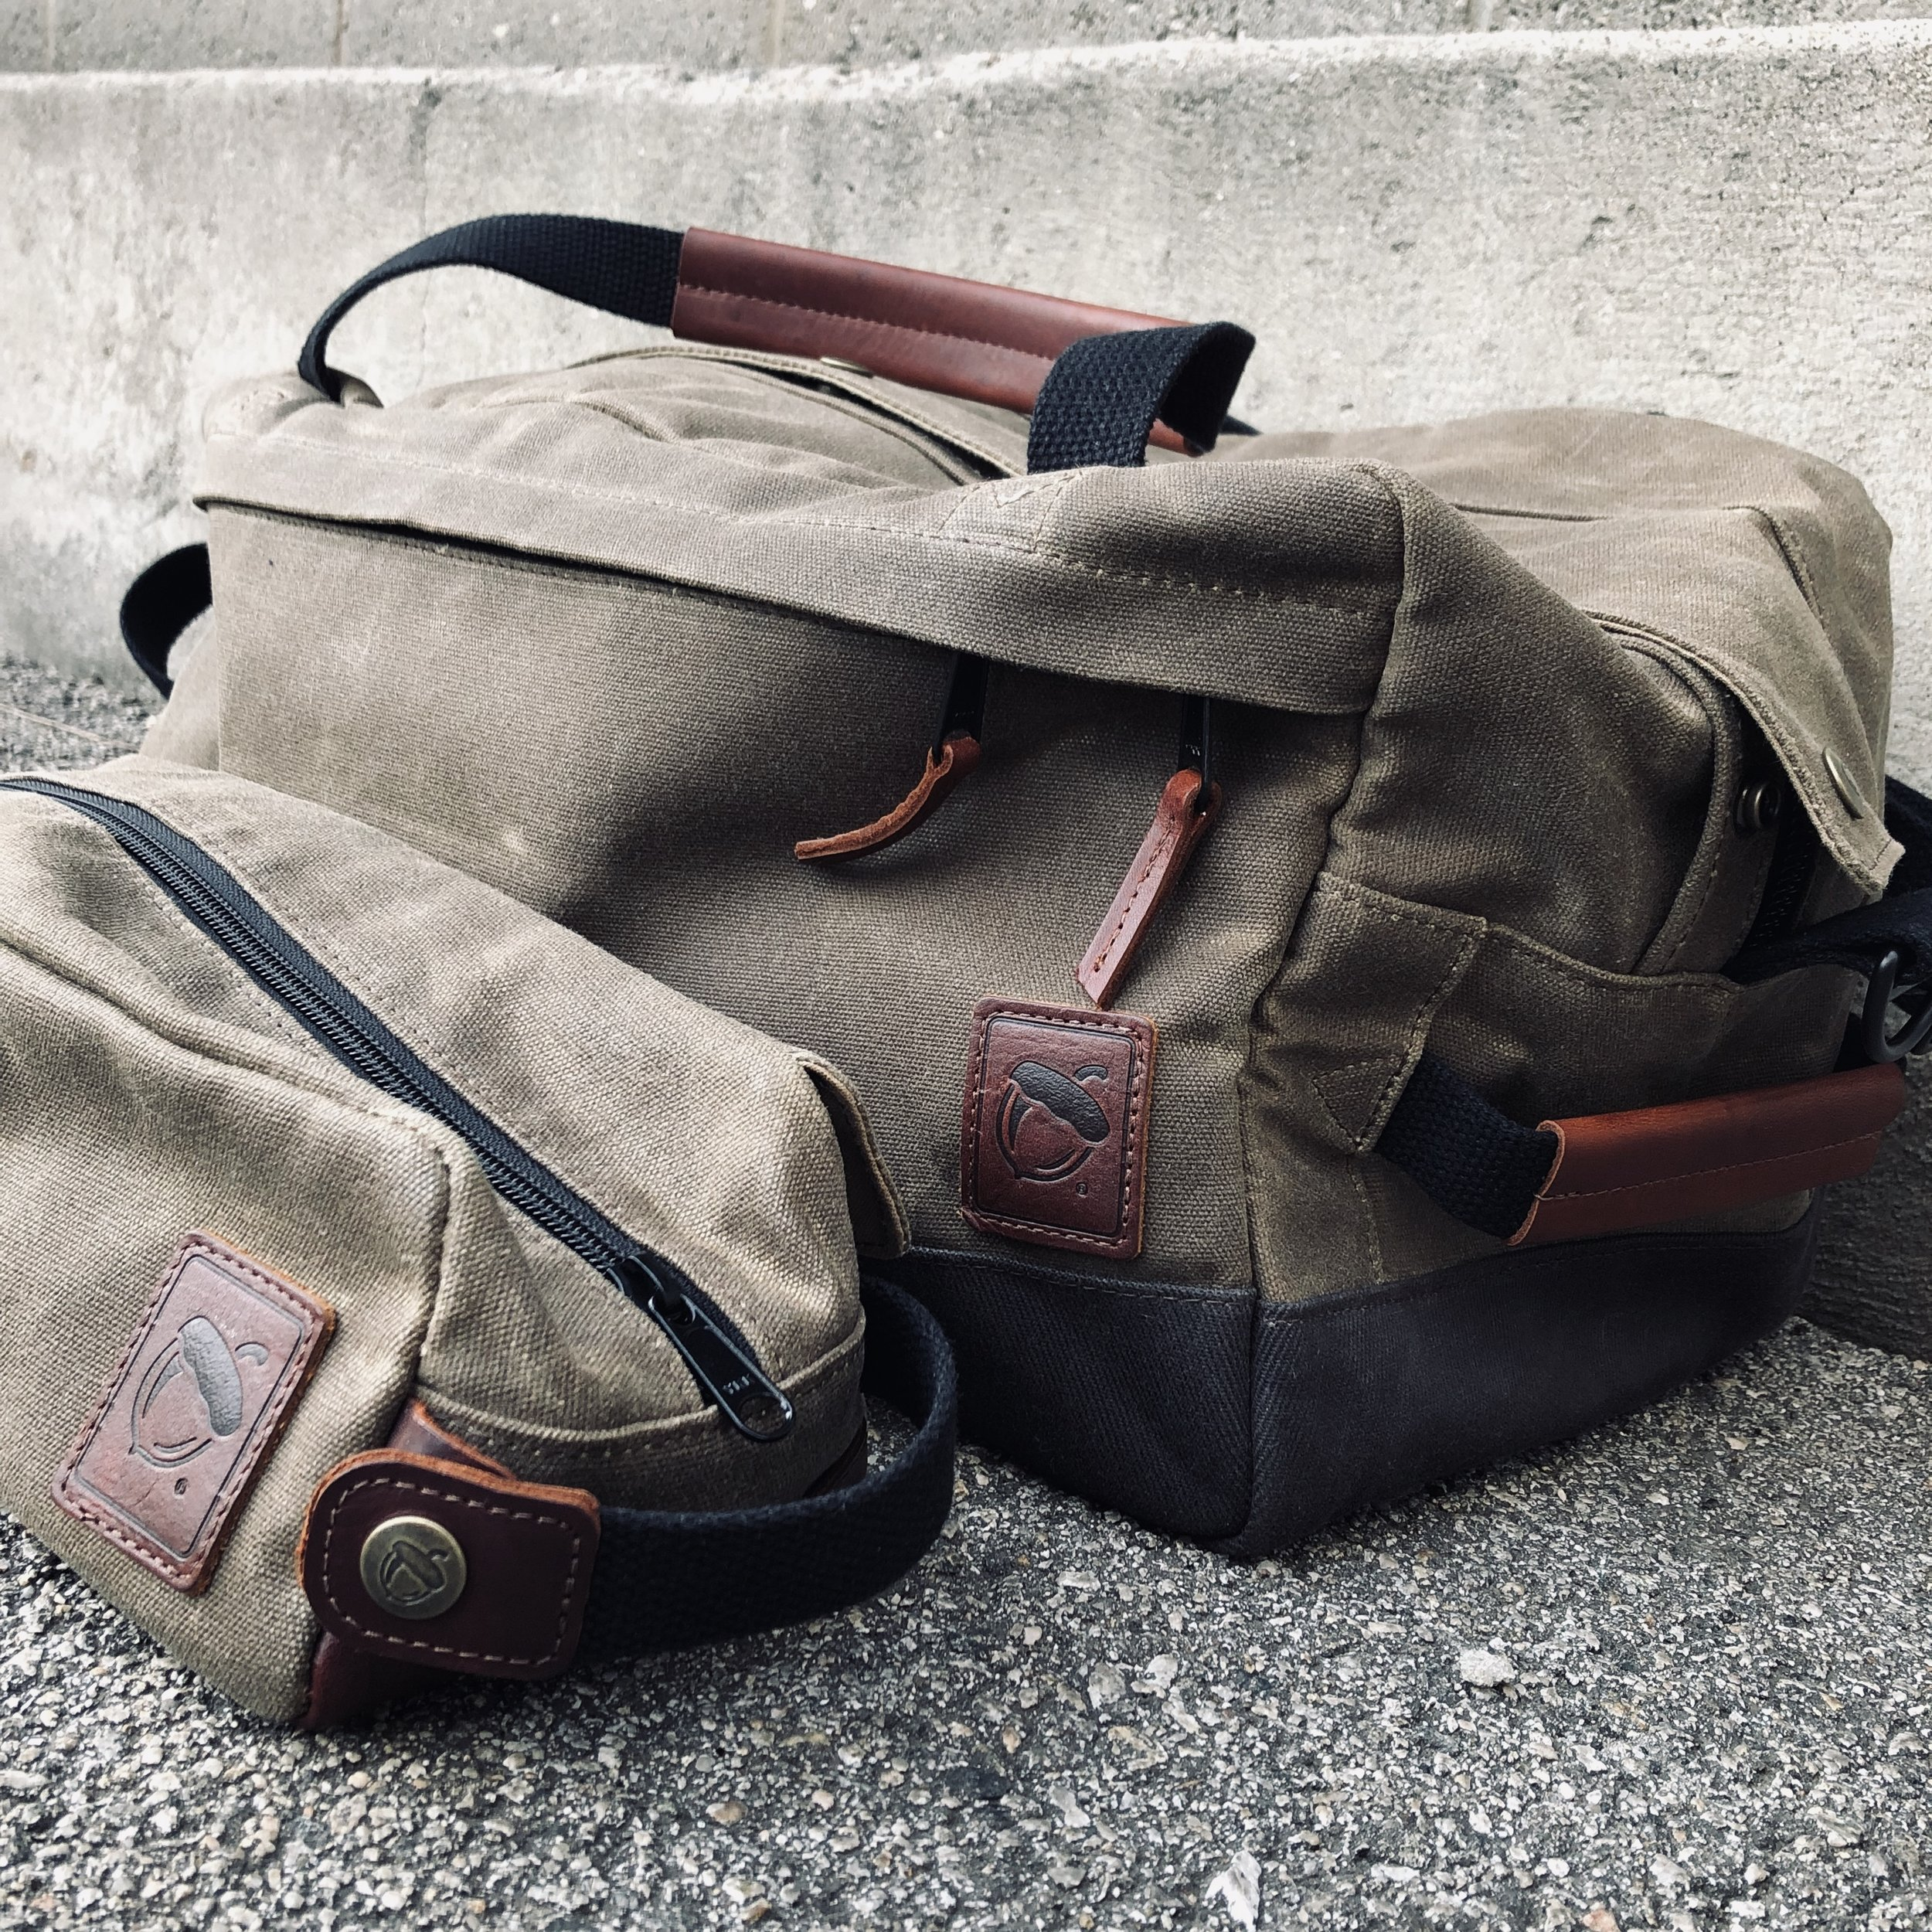 NutSac Duffel and Dopsac